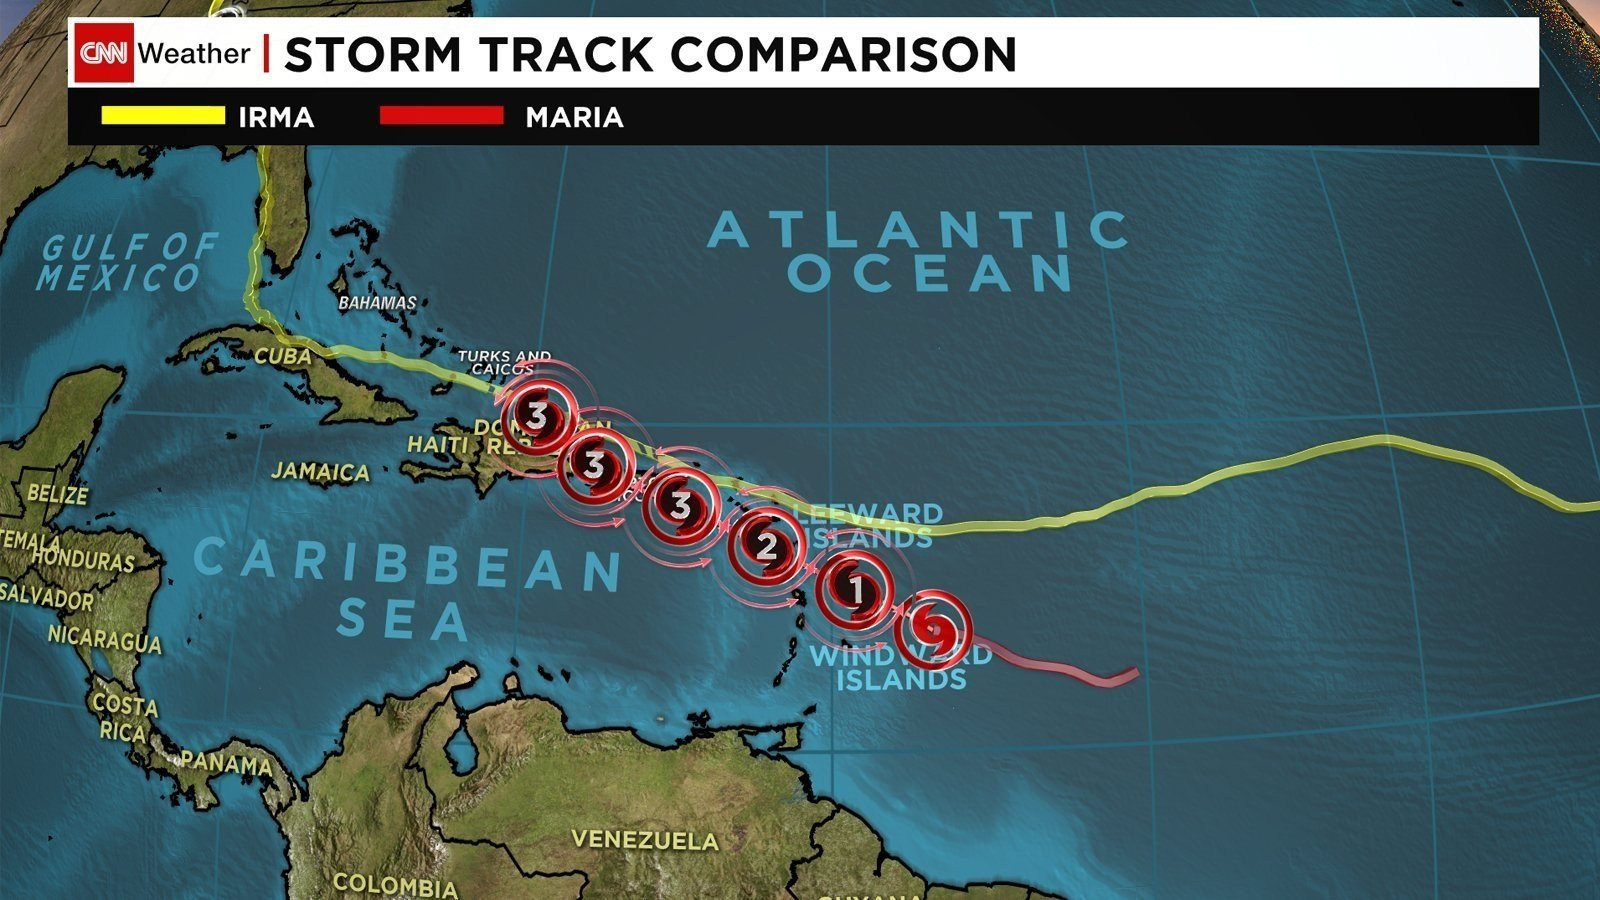 Hurricane Maria is forecast to rapidly strengthen over the next two days as it takes aim at Caribbean islands devastated by Hurricane Irma just days ago. (CNN)